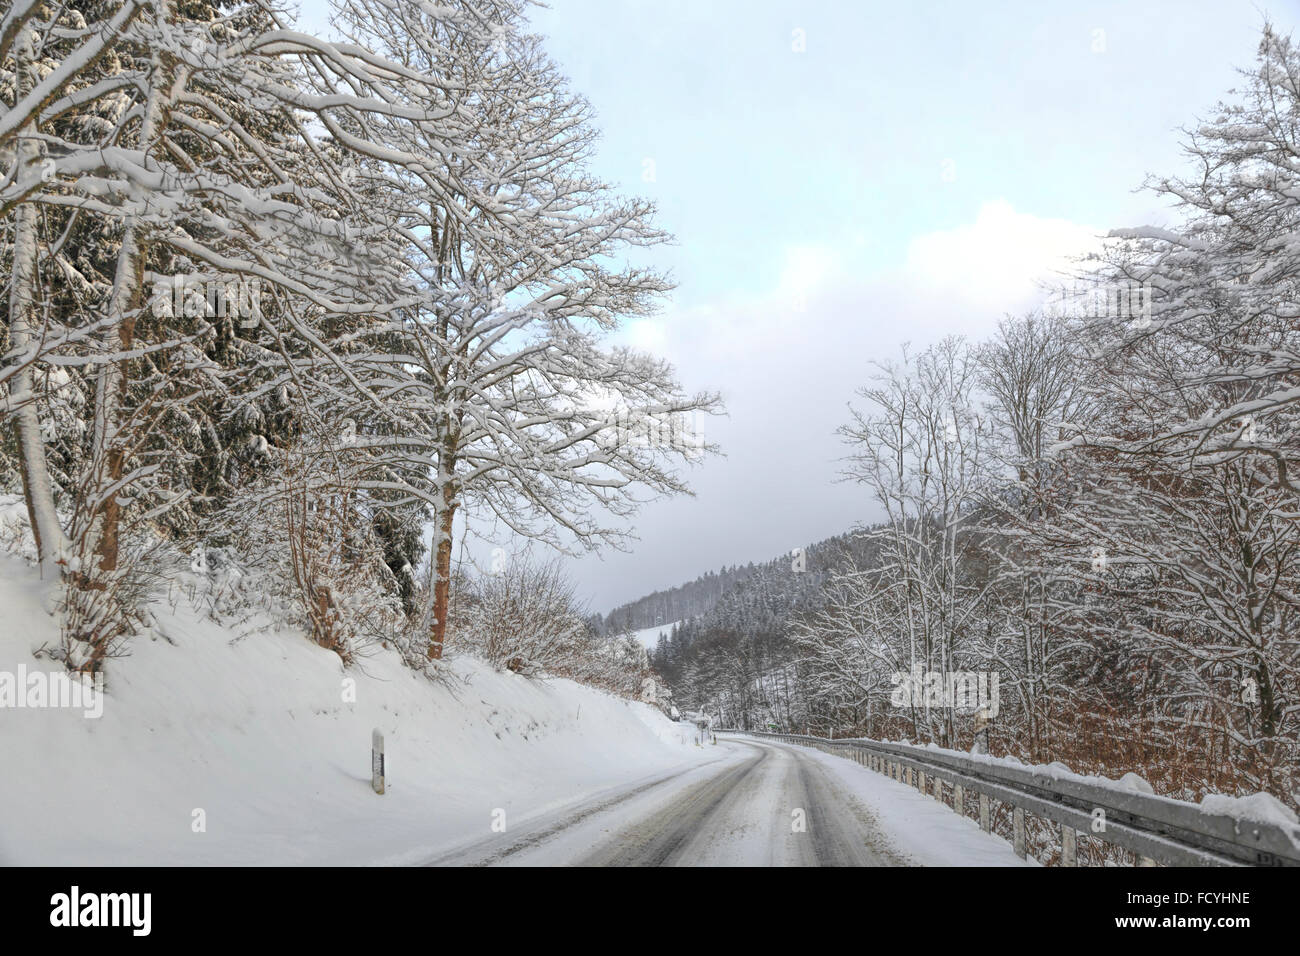 Scenic winter mood with hoarfrost on trees along the road, Westfeld / Schmallenberg, Sauerland, North Rhine-Westphalia,Germany. - Stock Image